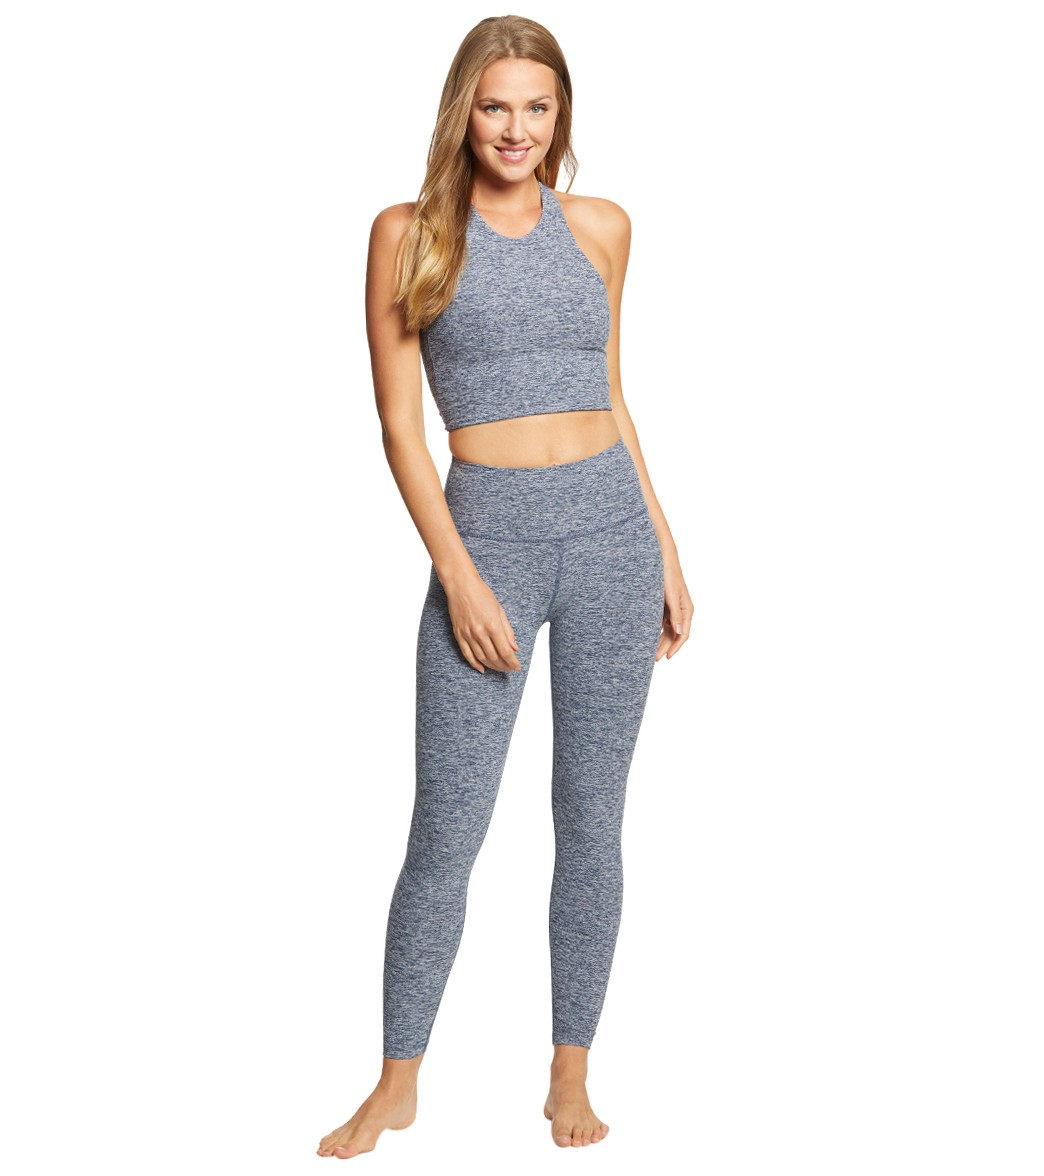 b24fda68aea28 Beyond Yoga Across The Strap High Waisted 7/8 Yoga Leggings at ...